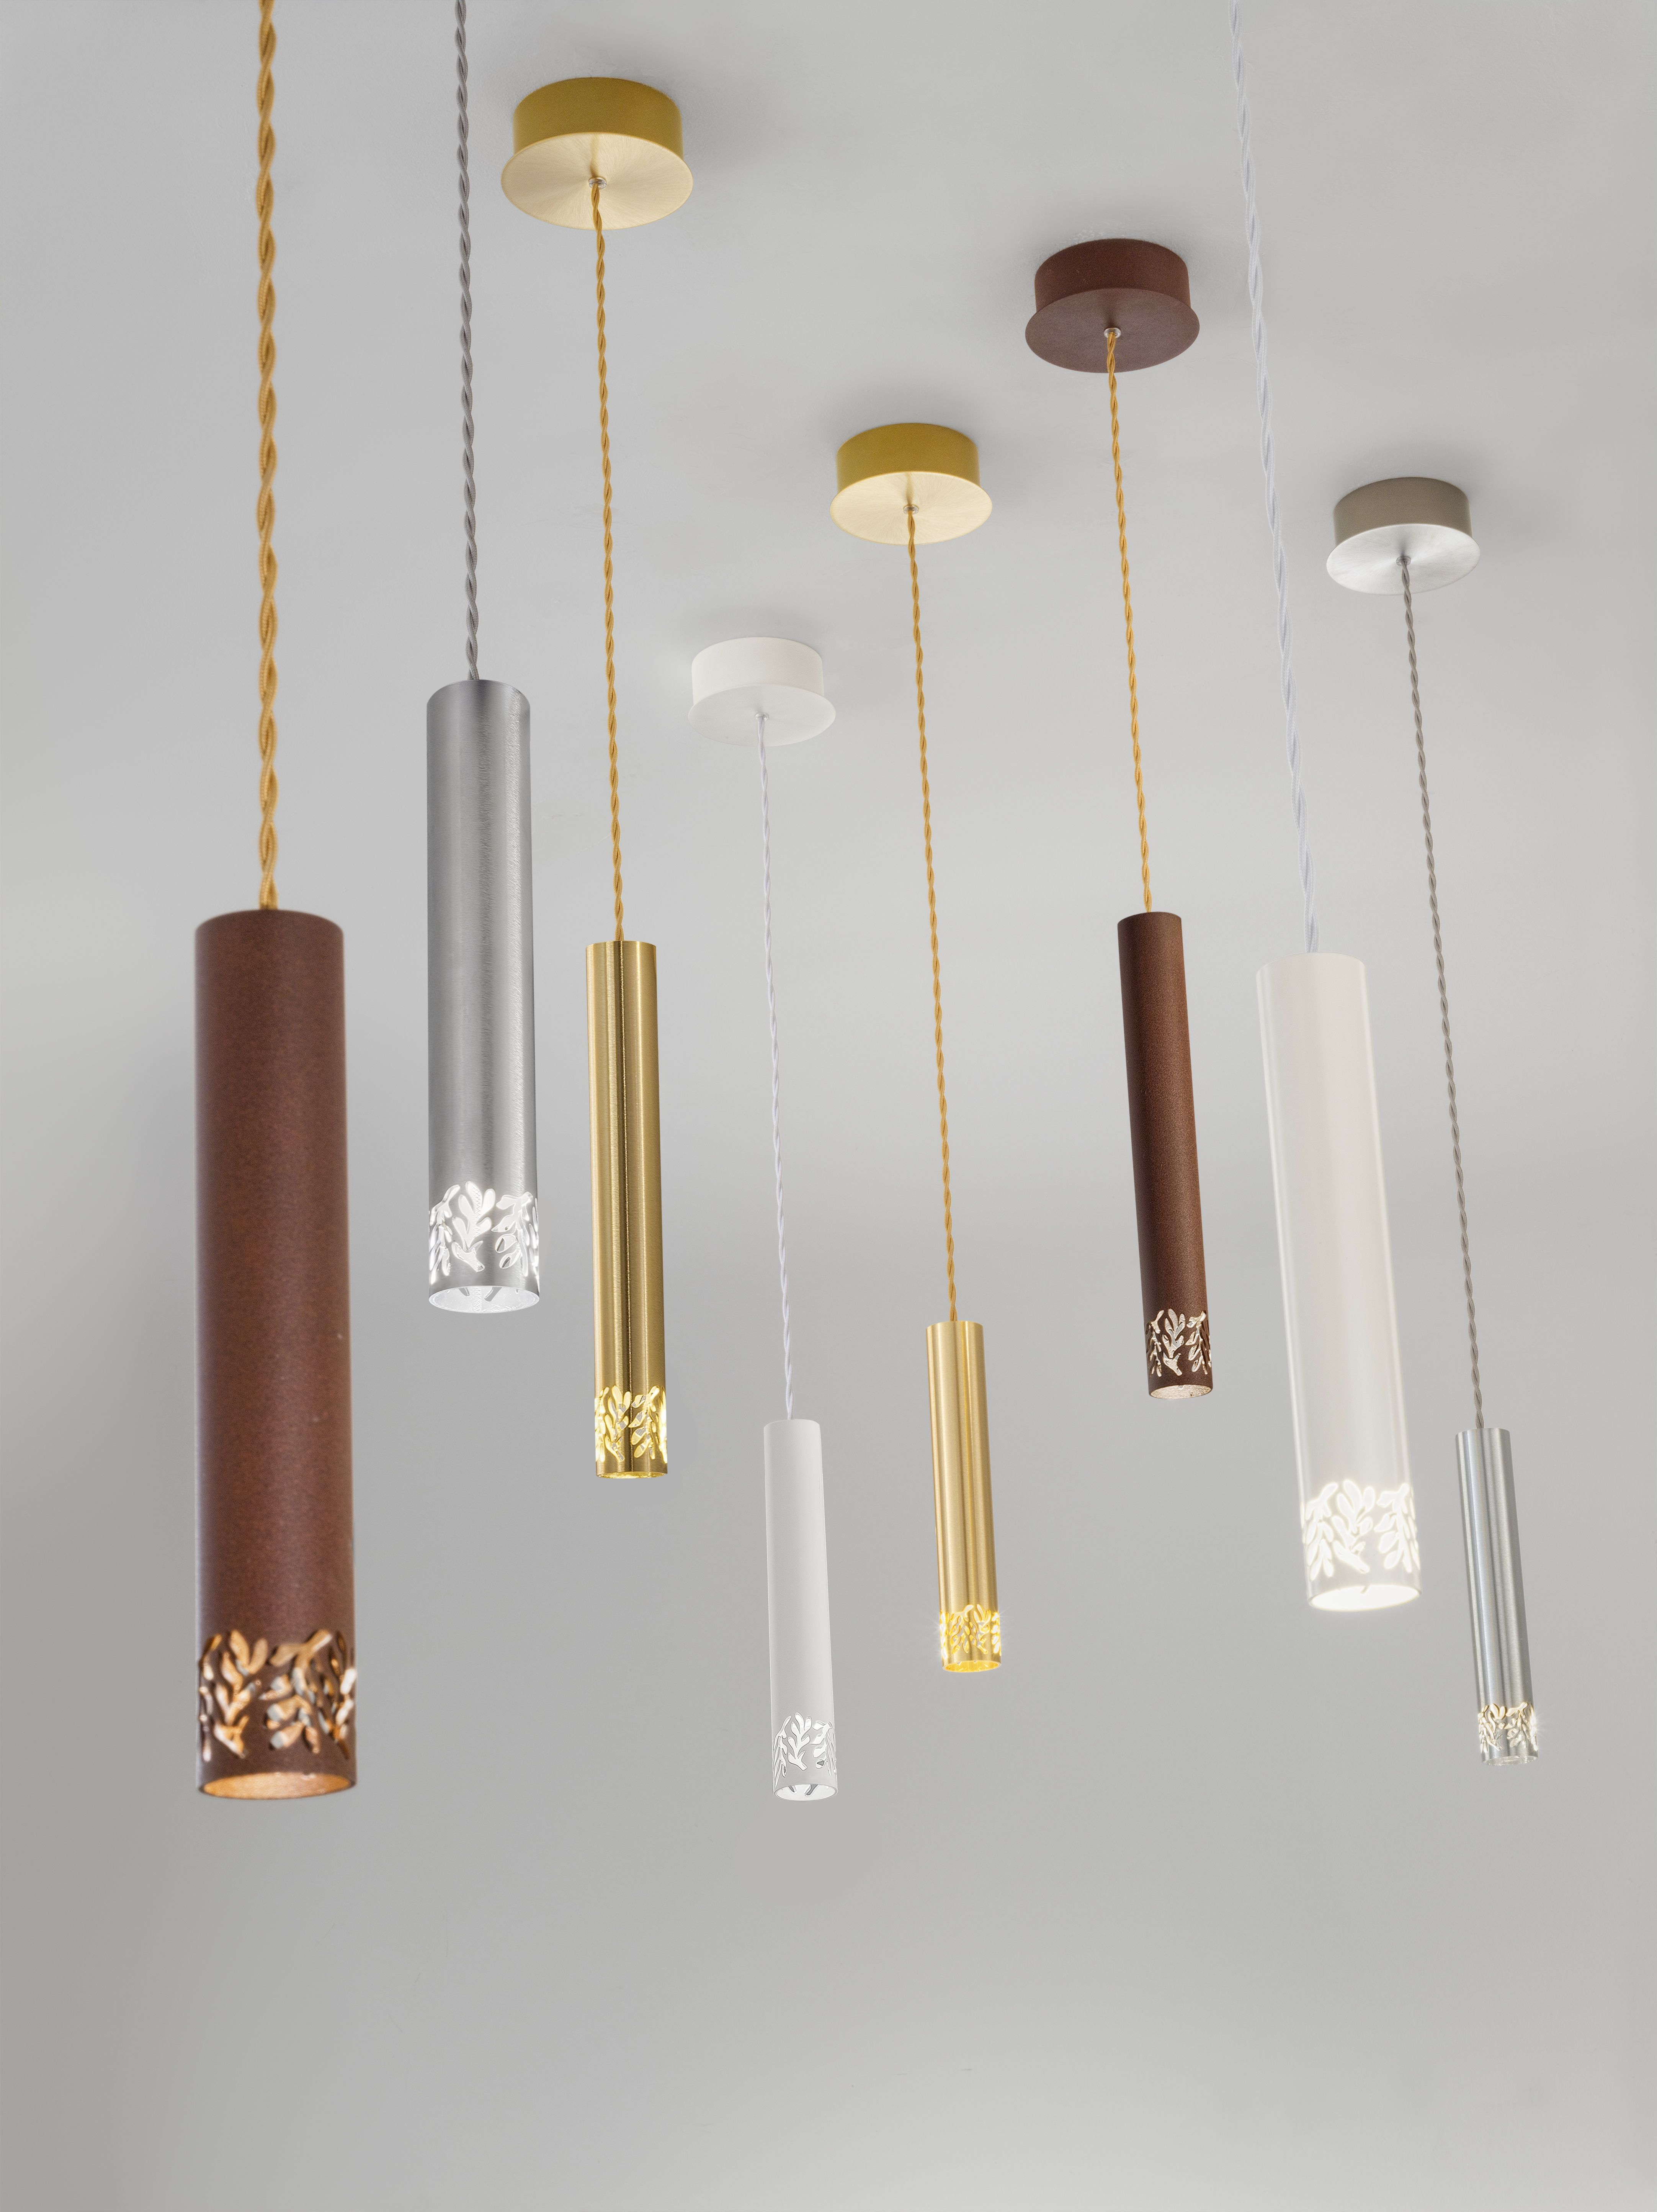 The Elegant Contemporary Wall And Ceiling Lights Hang Are Available In Four Colourways Brushed Gold Corten Steel Brushe Hanging Lights Ceiling Lights Light